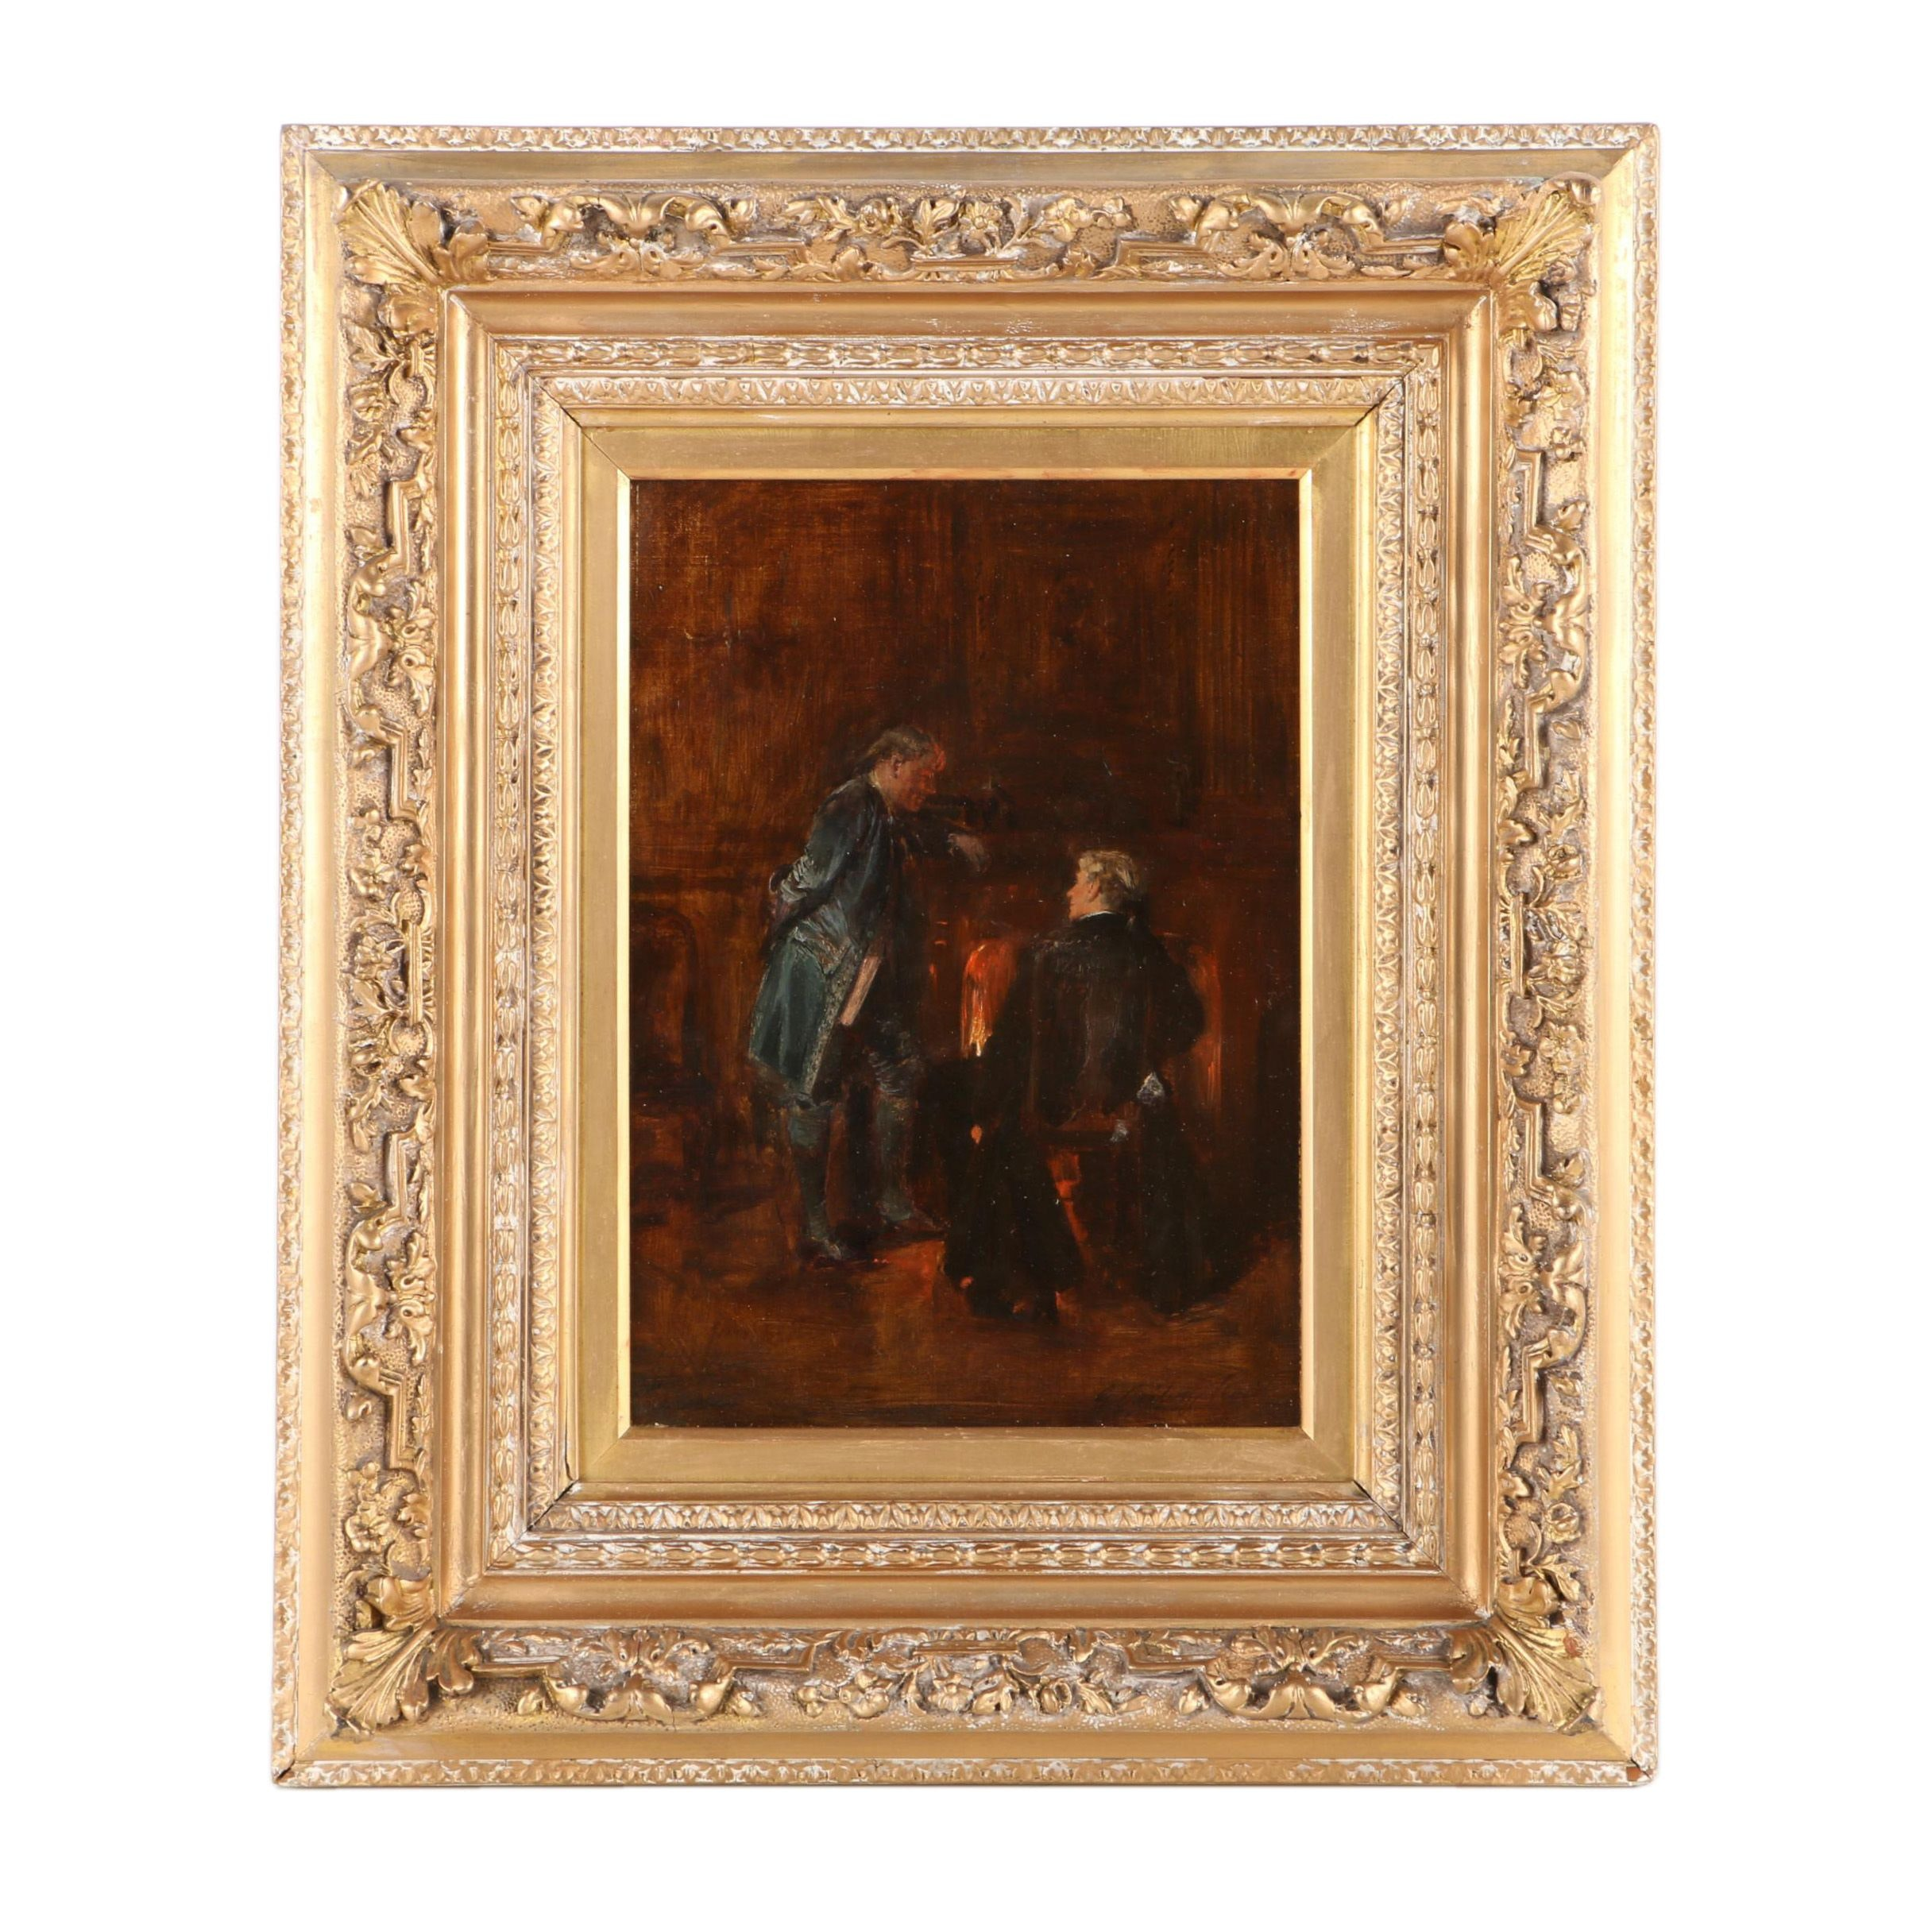 George Ogilvy Reid Oil Painting on Canvas of Two Men Next to Hearth